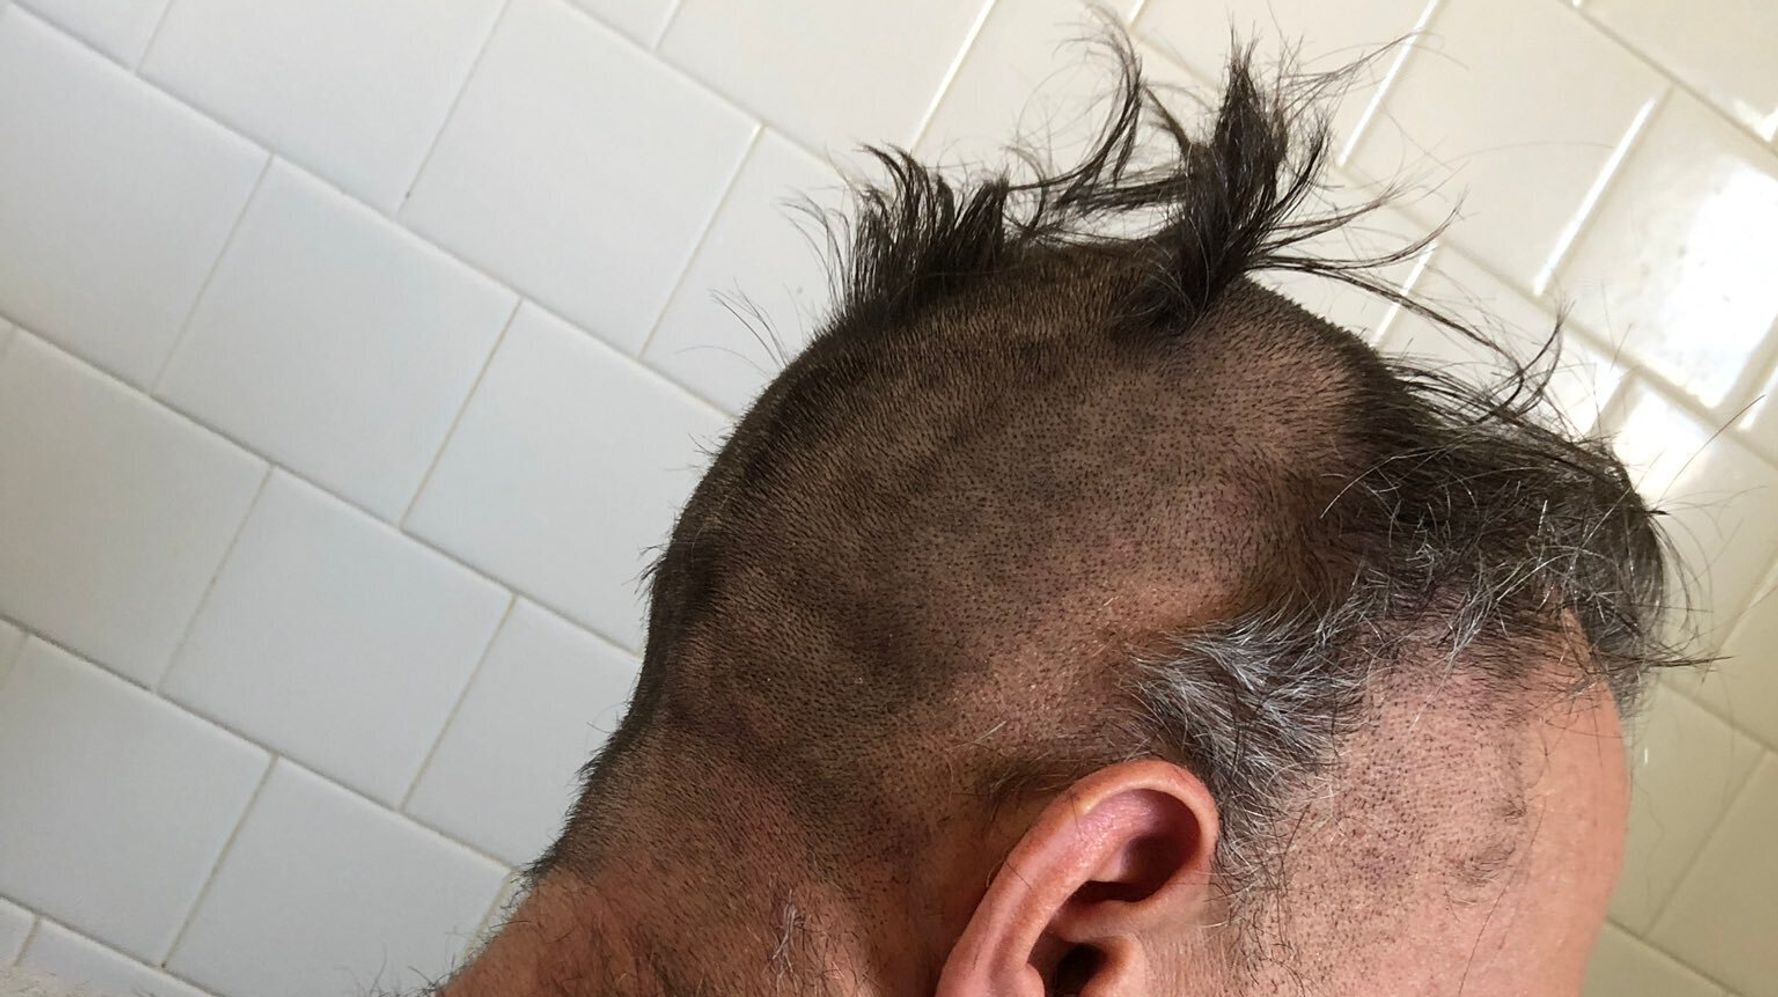 18 Photos Of Disastrous Quarantine Haircuts You Need To See